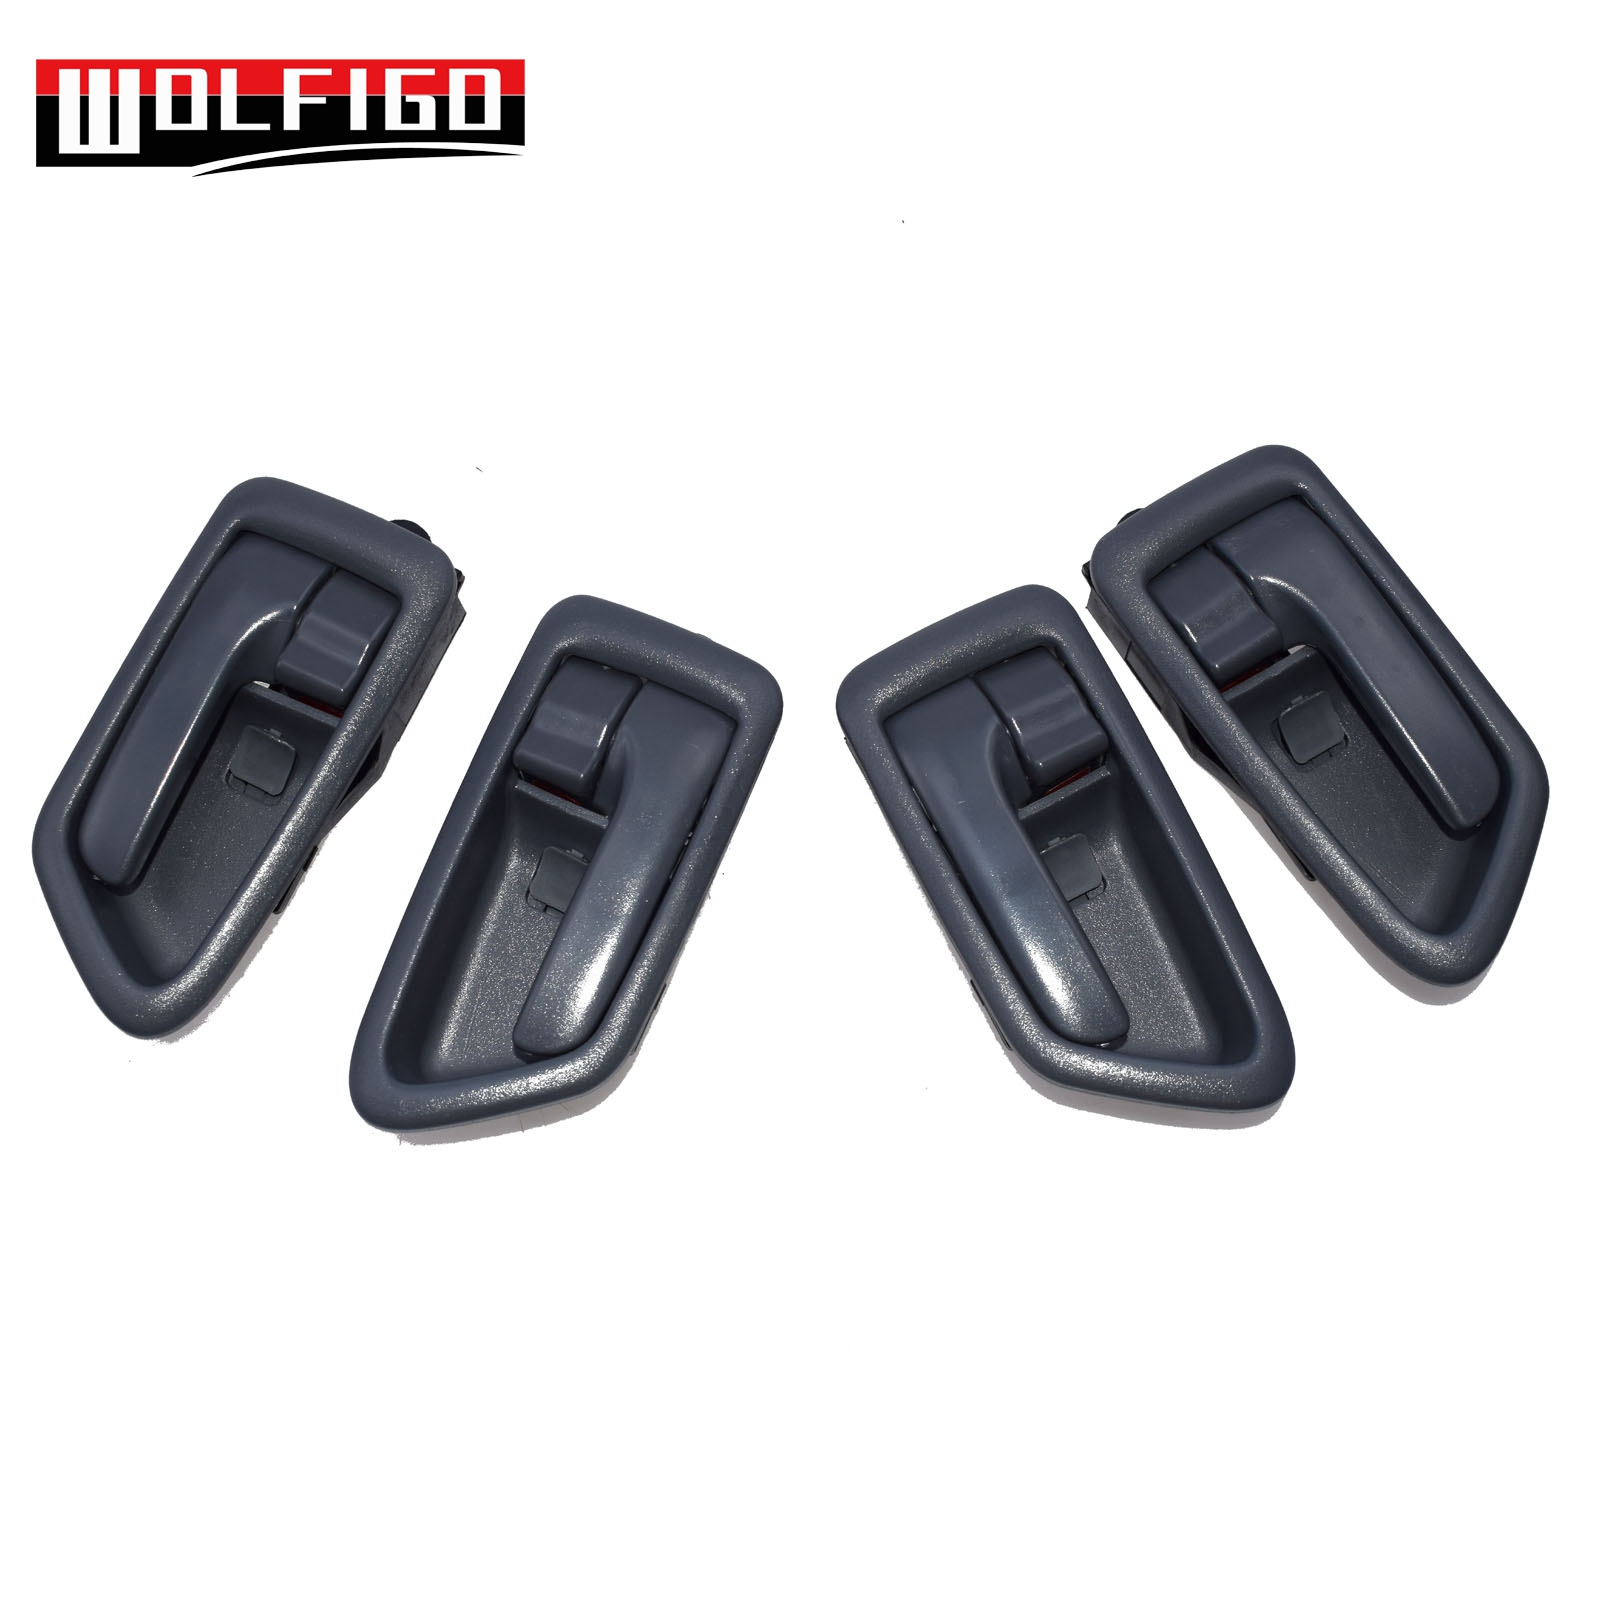 New 4Pcs Front Rear Outside Door Handle SET For Toyota Camry 1997-01 69210AA010